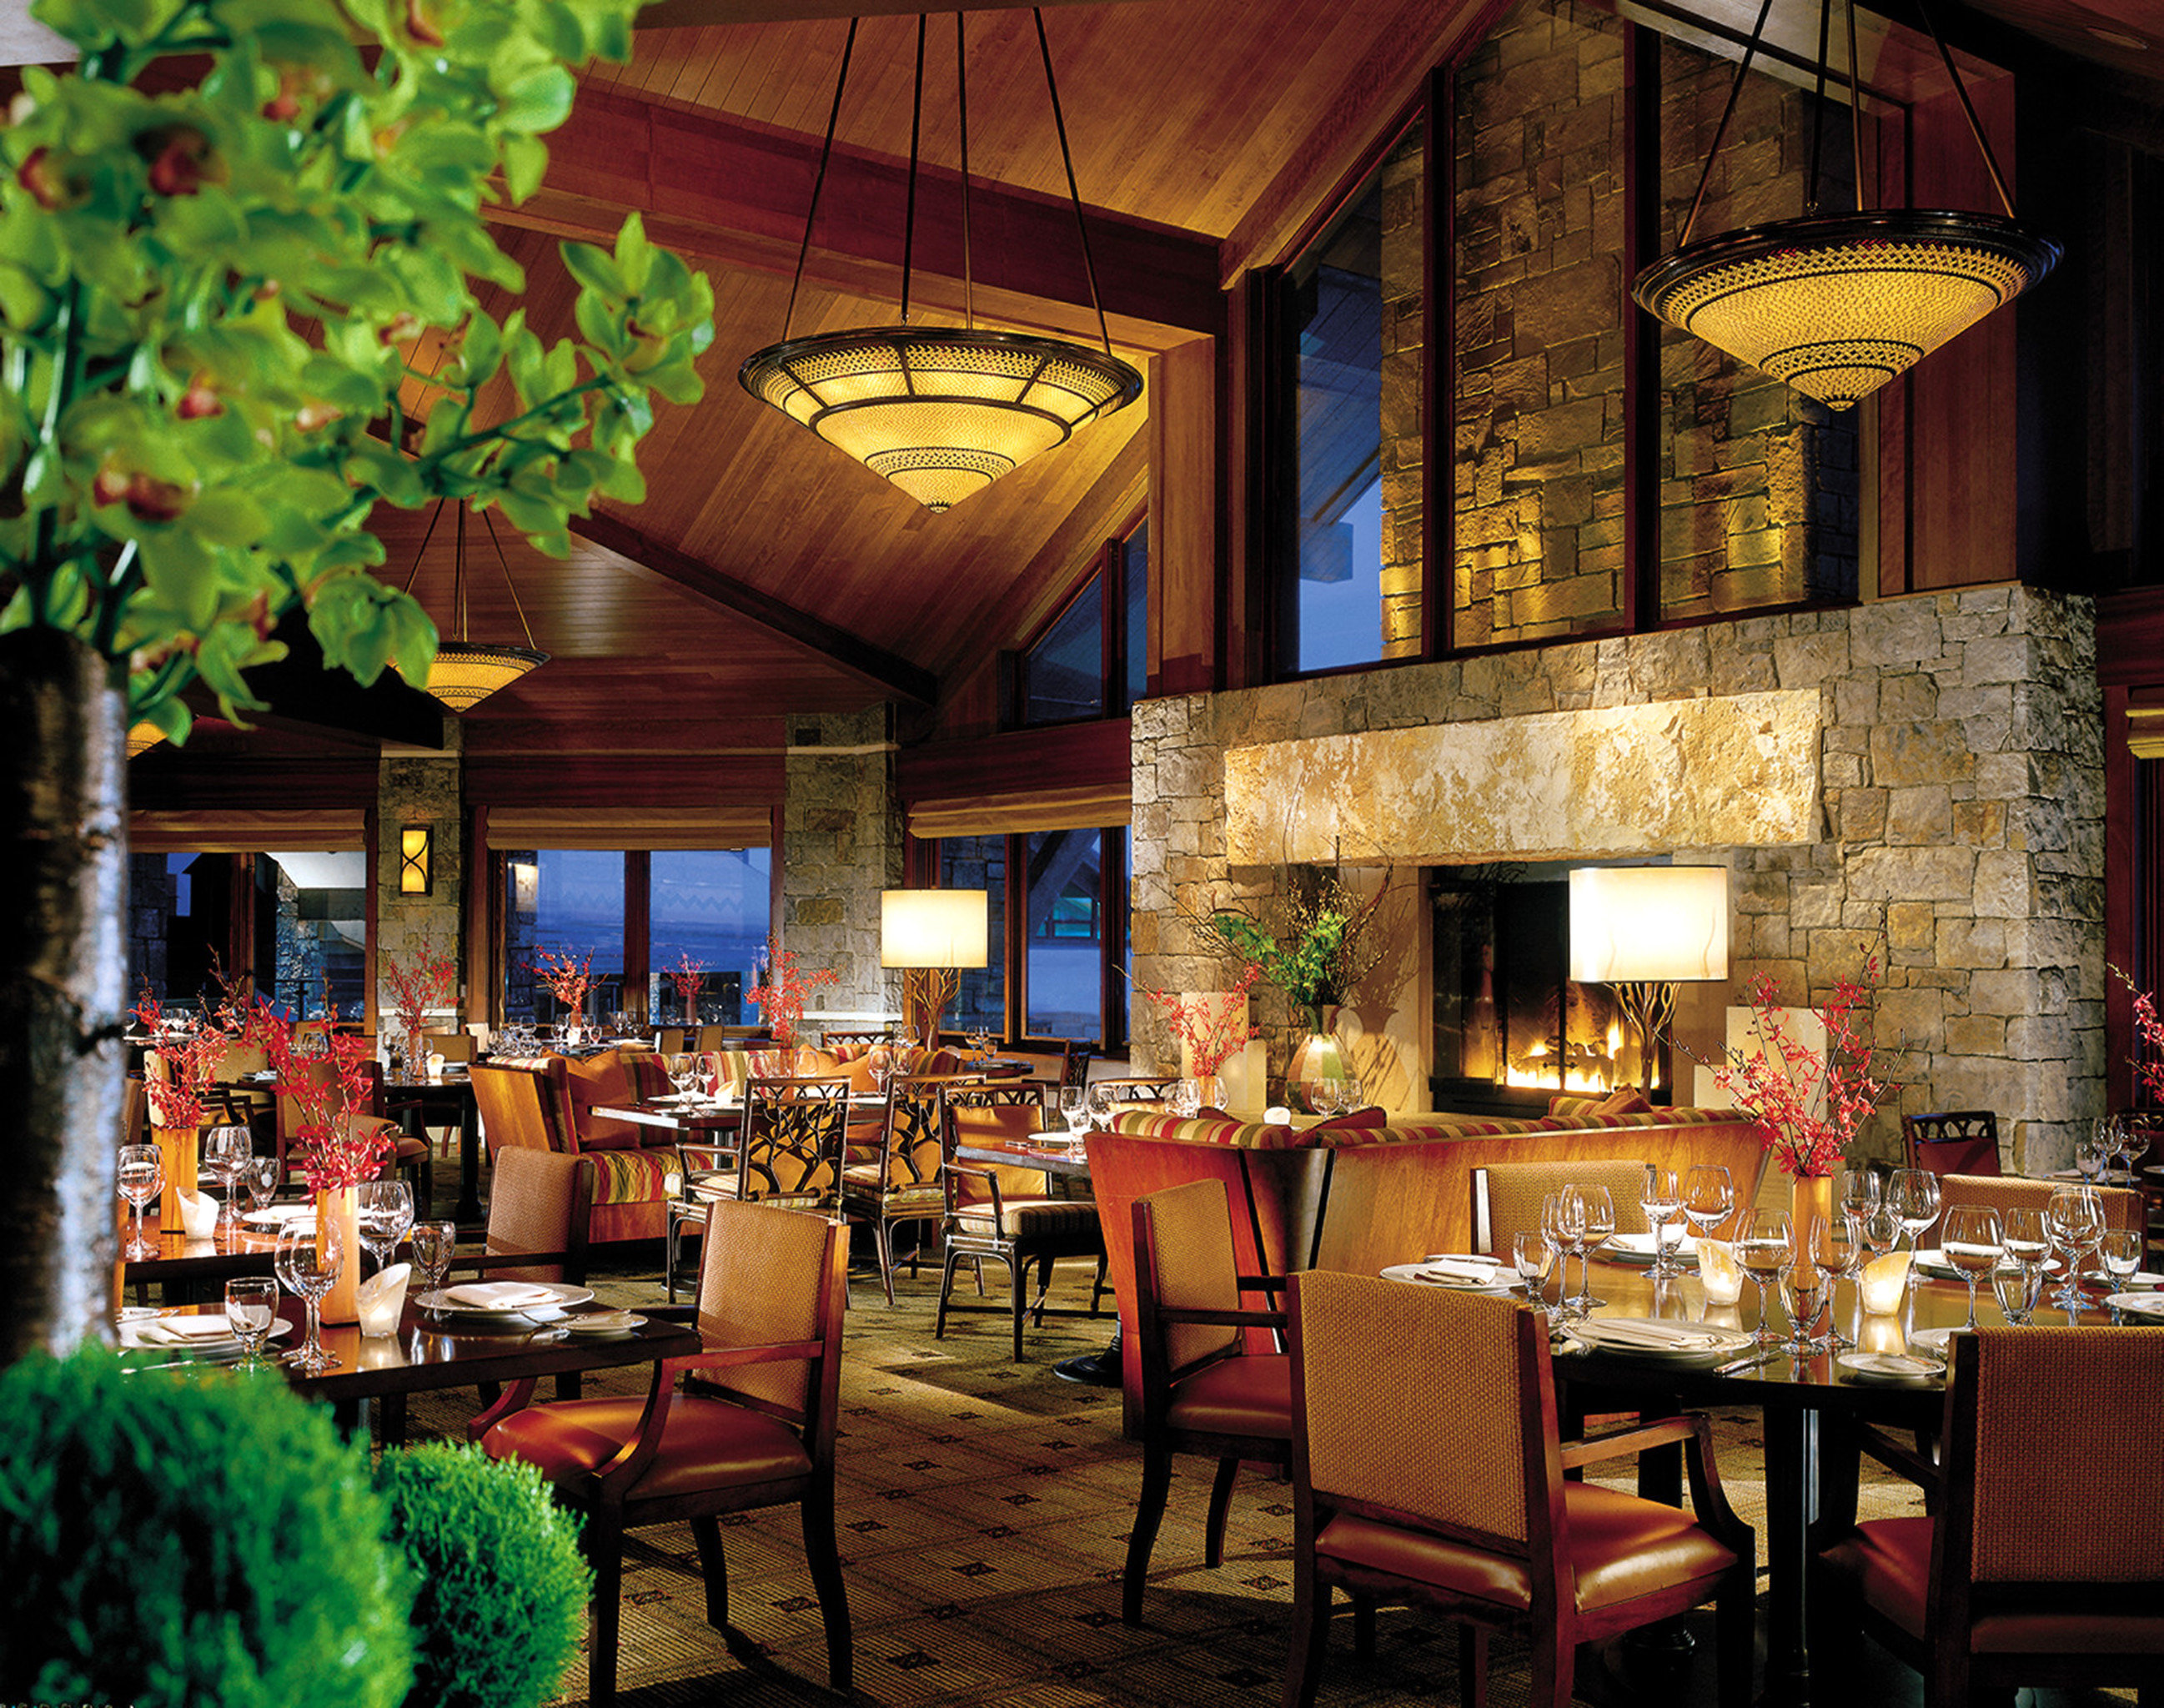 Dining Drink Eat Fireplace Lounge Resort Rustic chair restaurant Bar tavern function hall